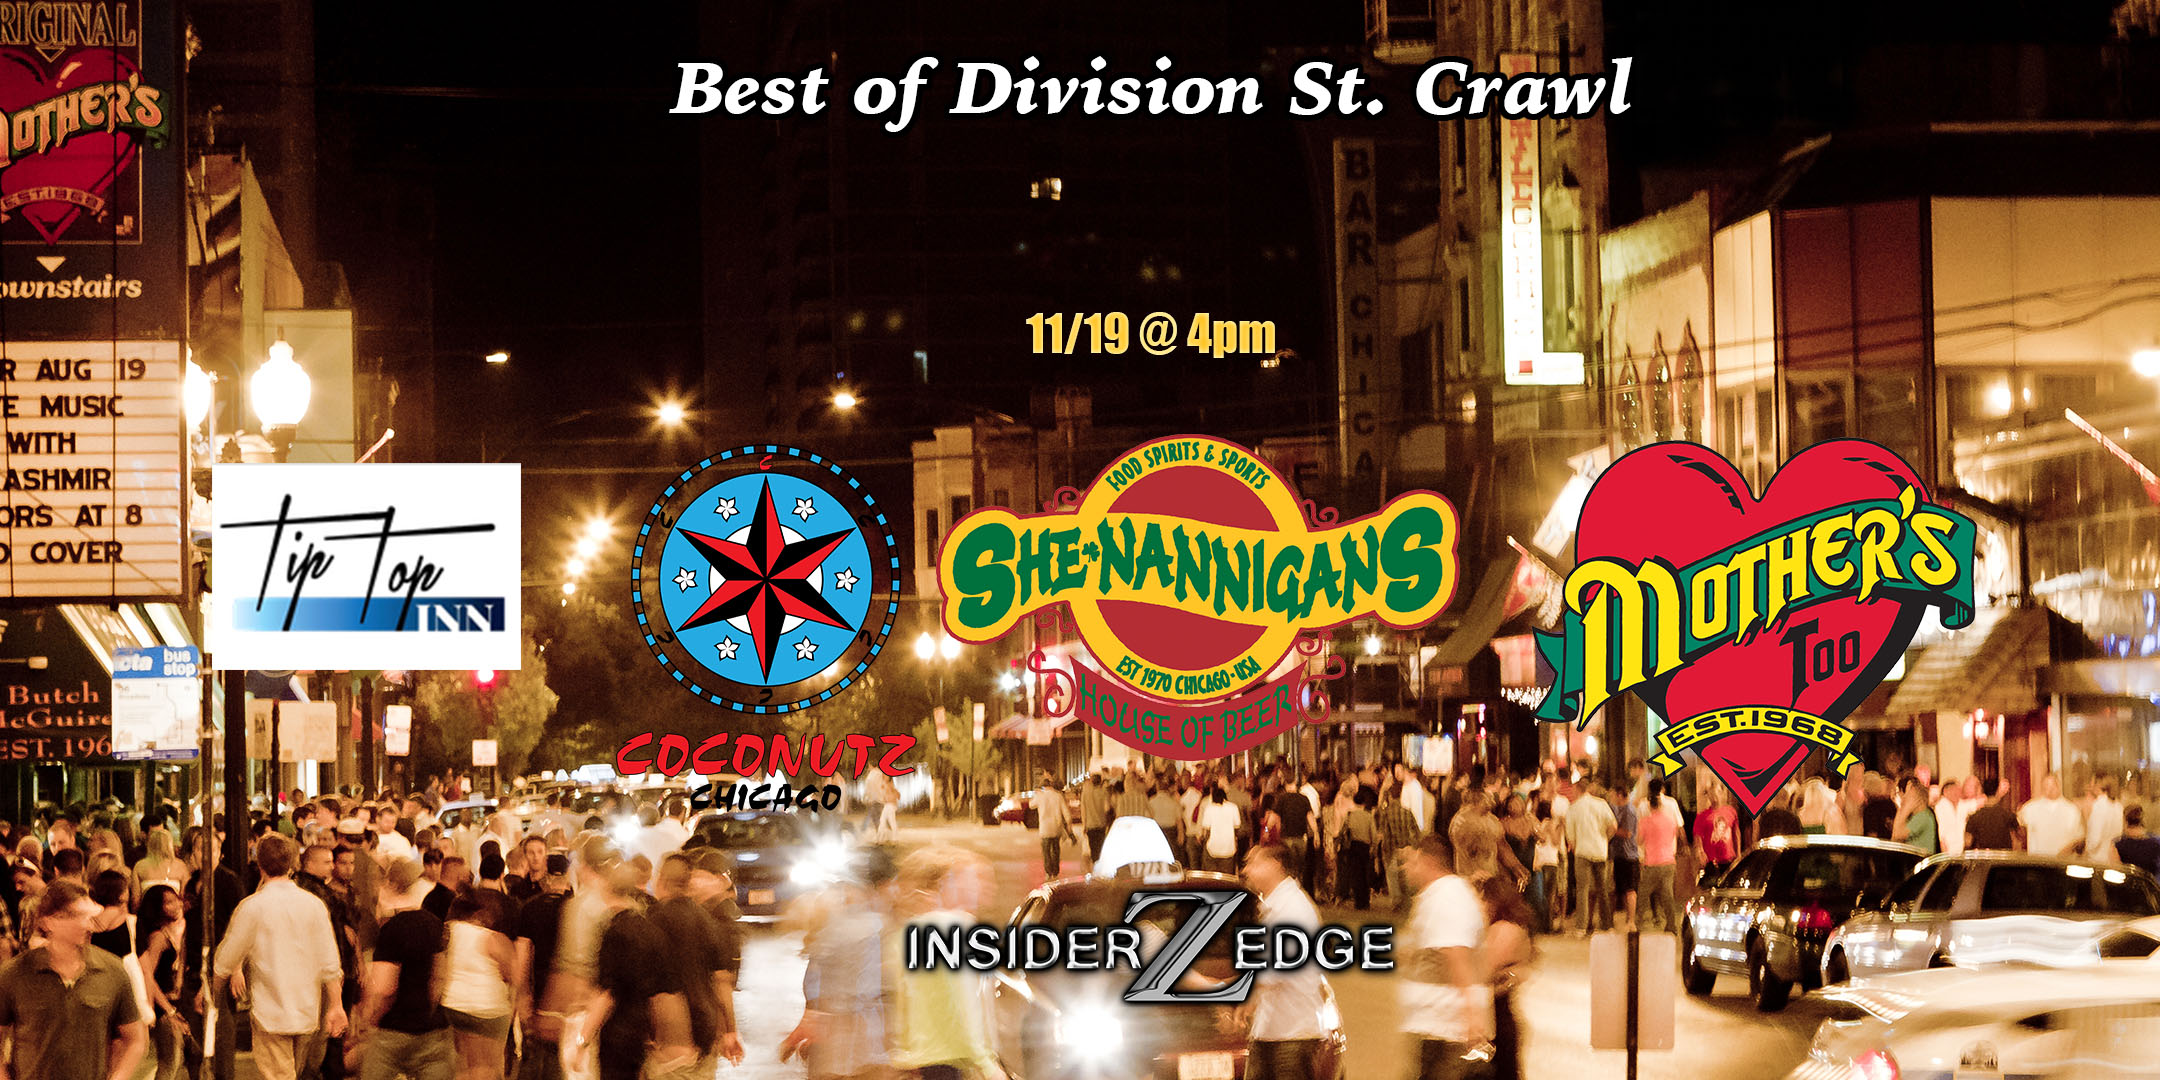 The Best of Division Street Crawl